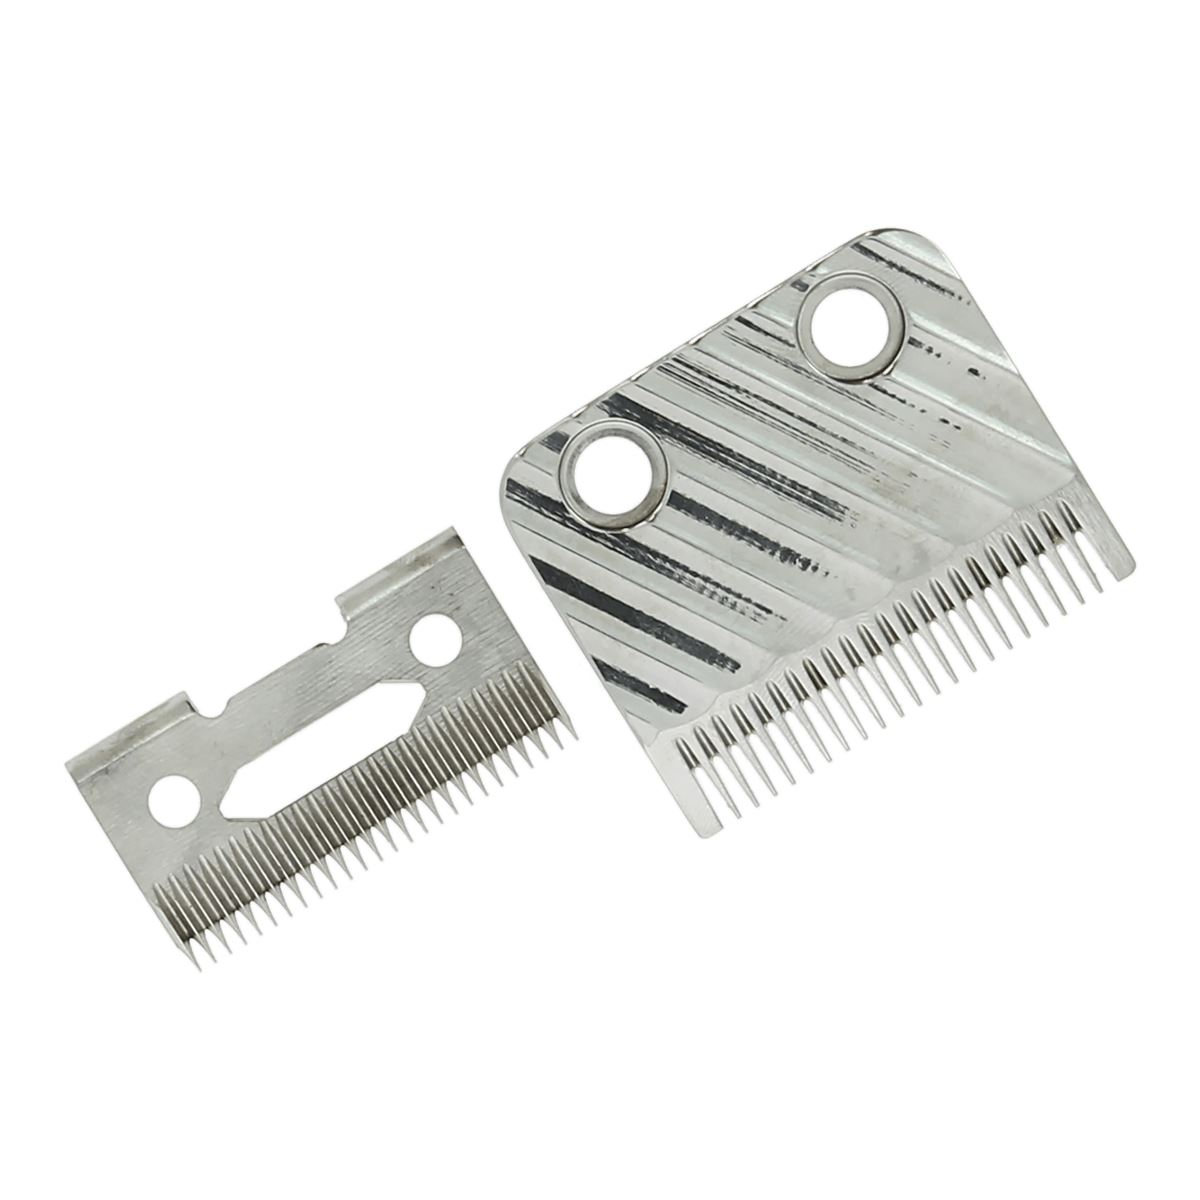 Babyliss Blade Assembly Replacement Clipper 61379 Clippers An Overview Of Clipping Circuits Electronic Item Description